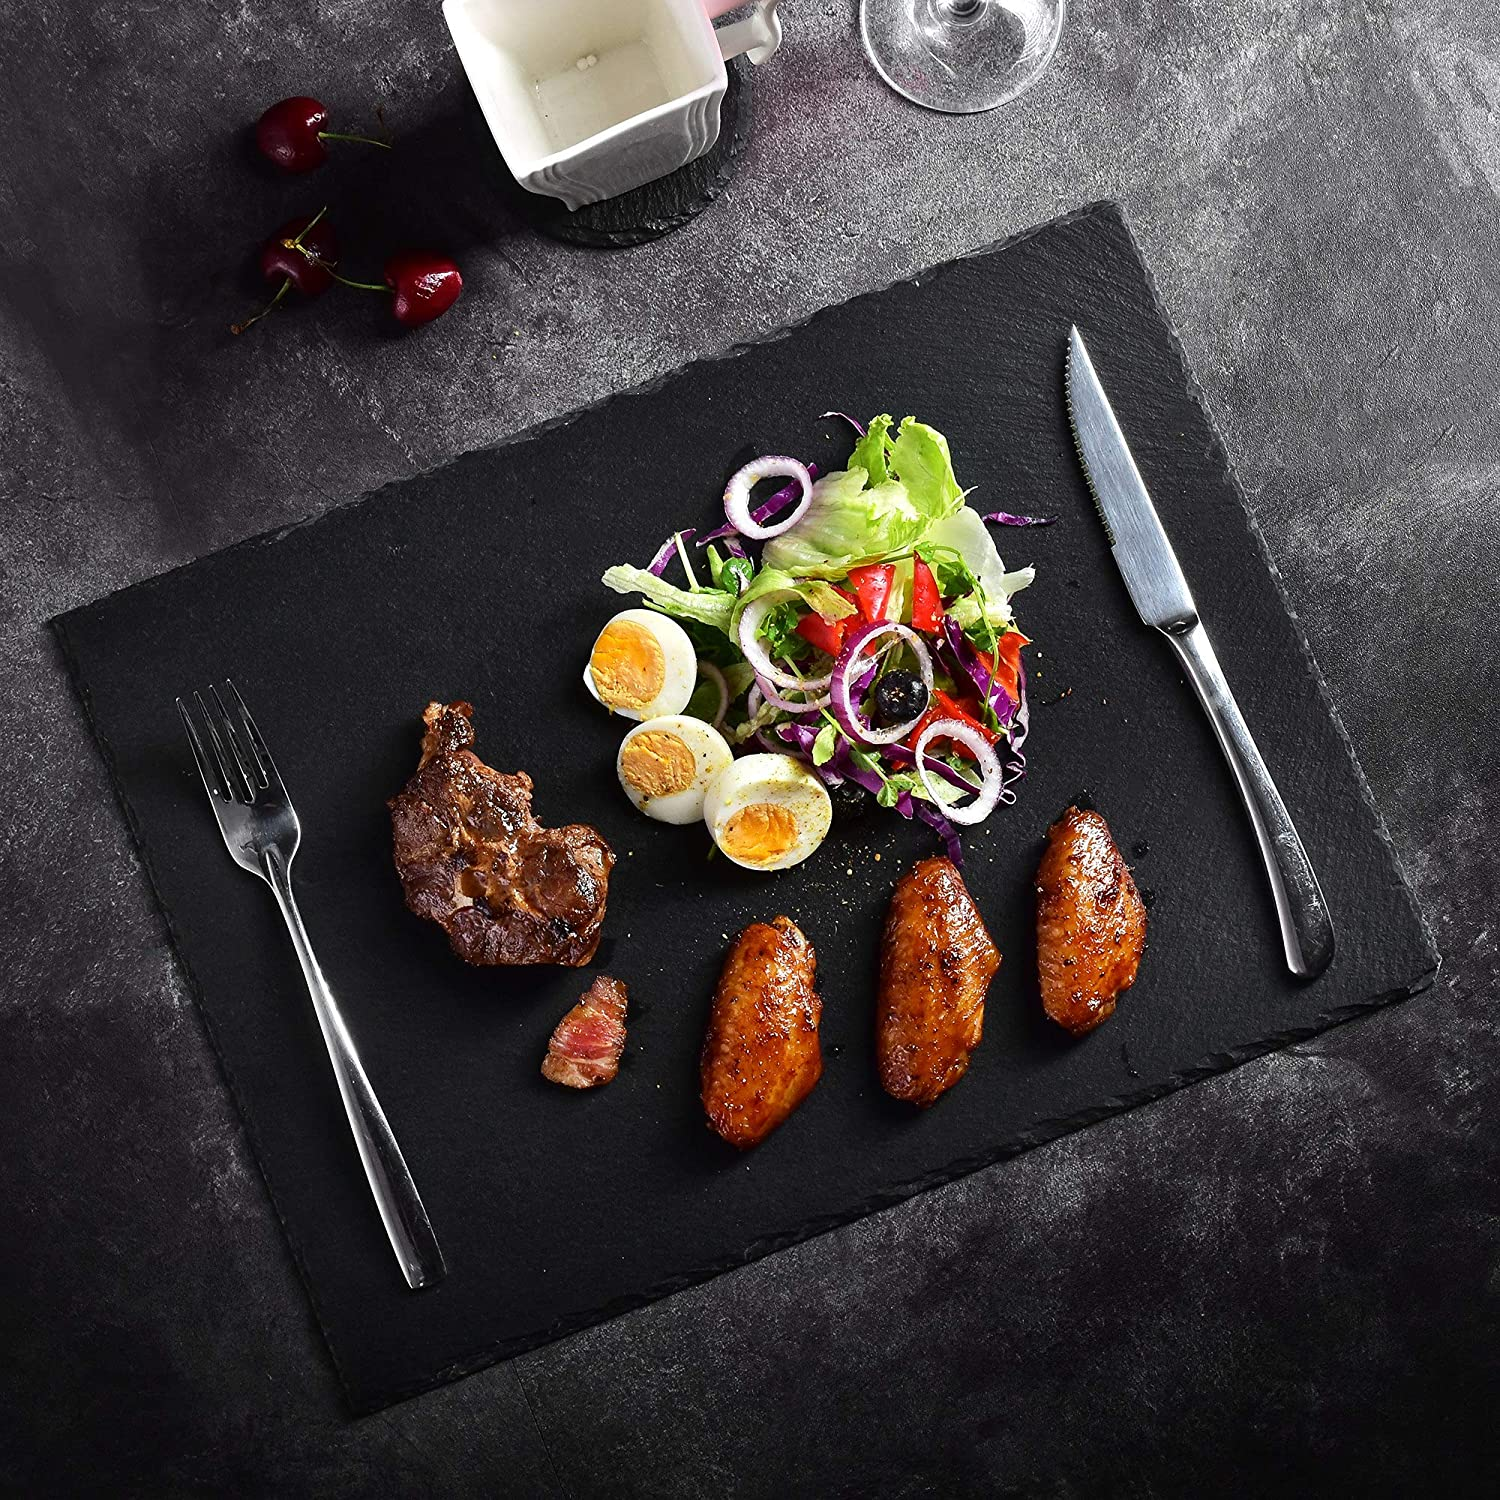 Series Nature.Slate 1-Piece Natural Slate Stone Tablemats Square and Rectangular Placemat Sets Serving Platter for Dinner Parties and Entertaining MALACASA 40 X 30 CM